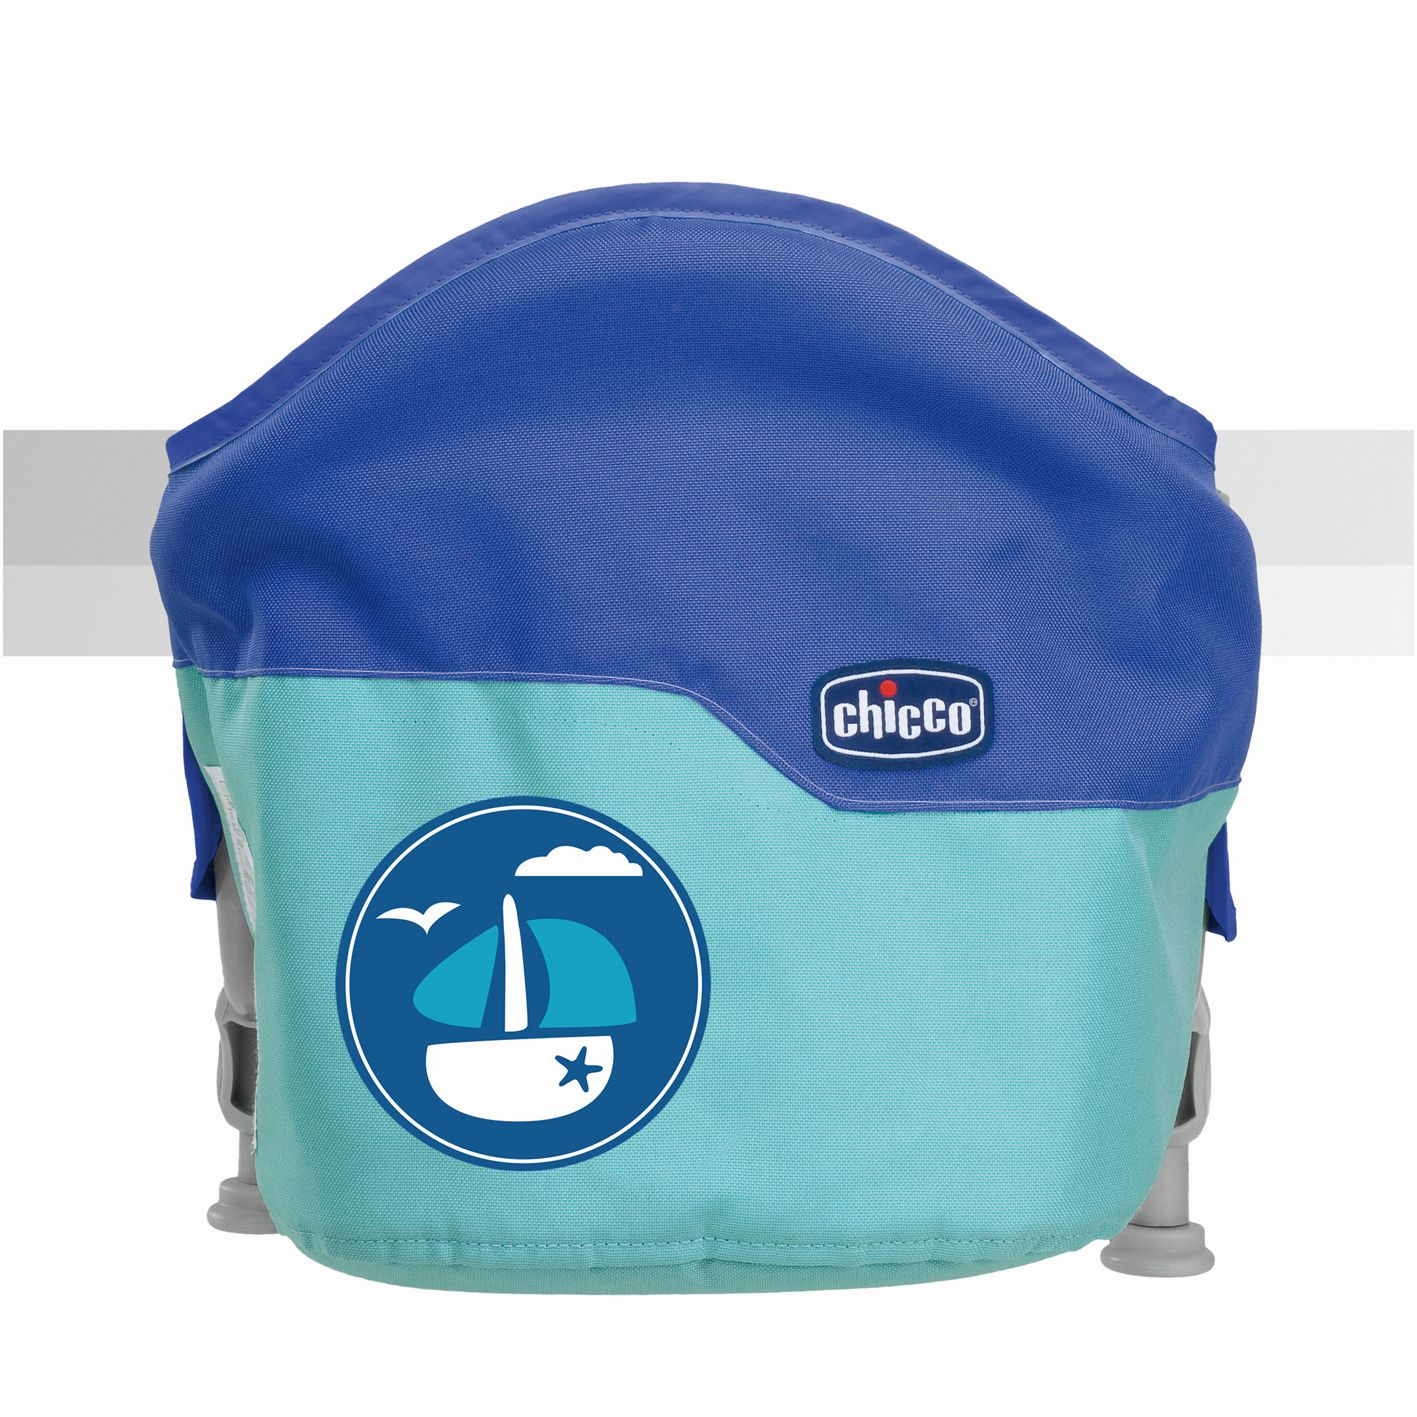 chicco hook on chair chairs for sale ebay easy lunch buy at kidsroom living